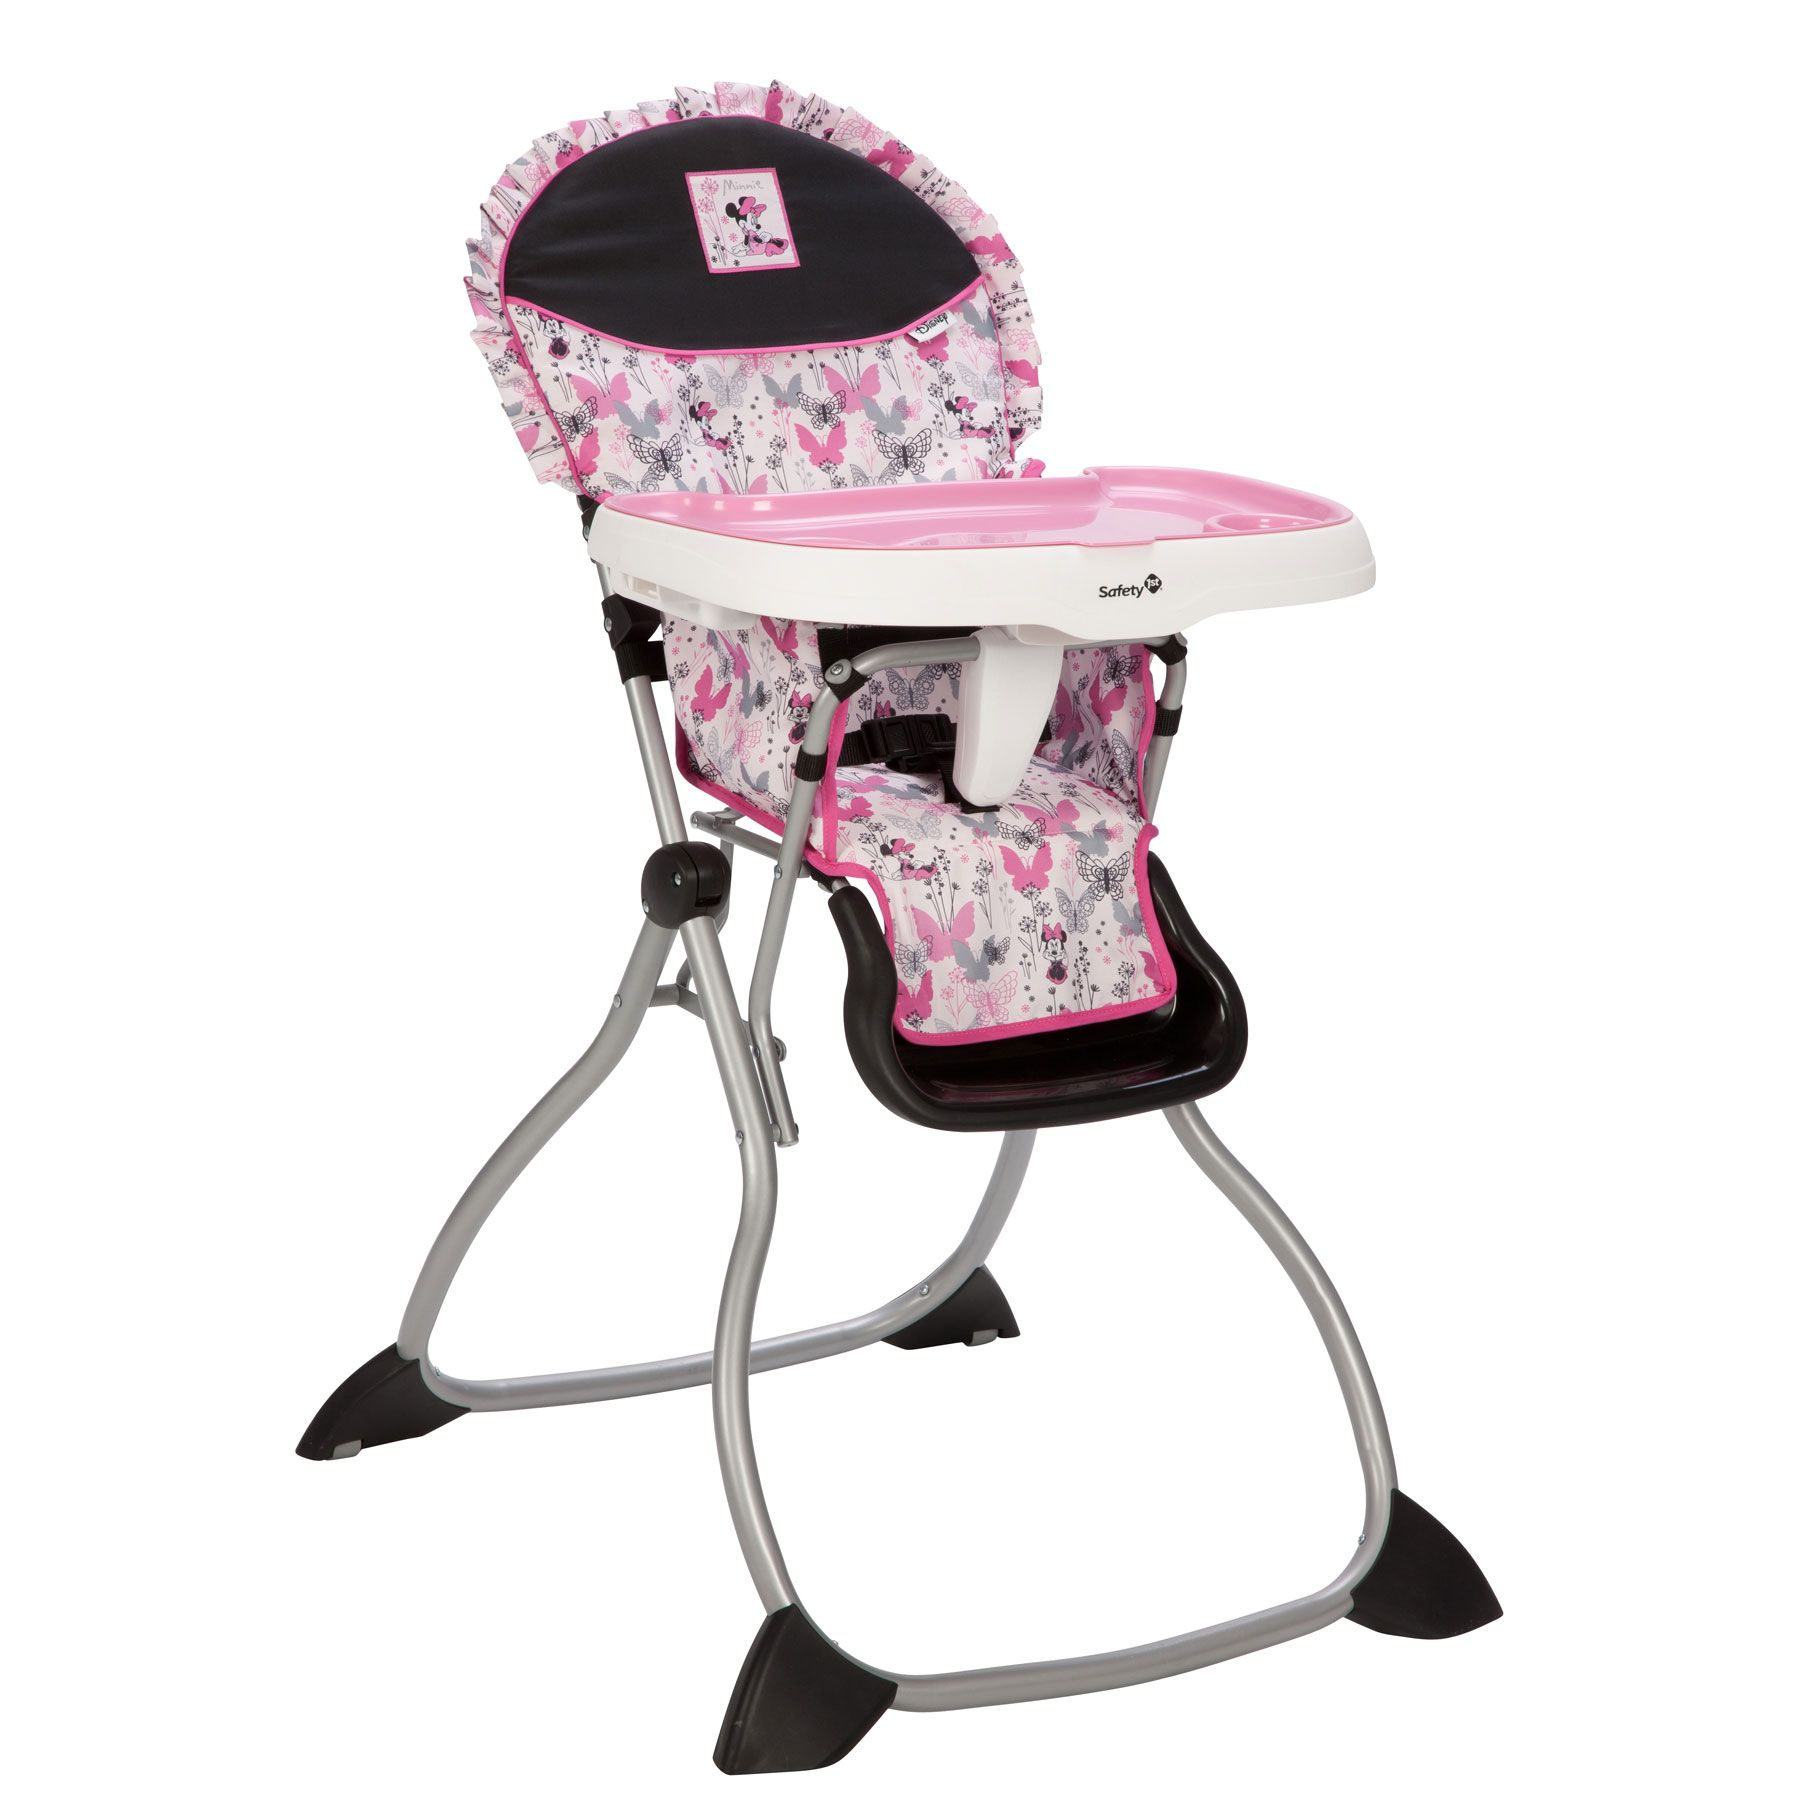 Charming This Pink, Grey And Black Minnie Mouse High Chair Is As Simple To Use As Great Pictures